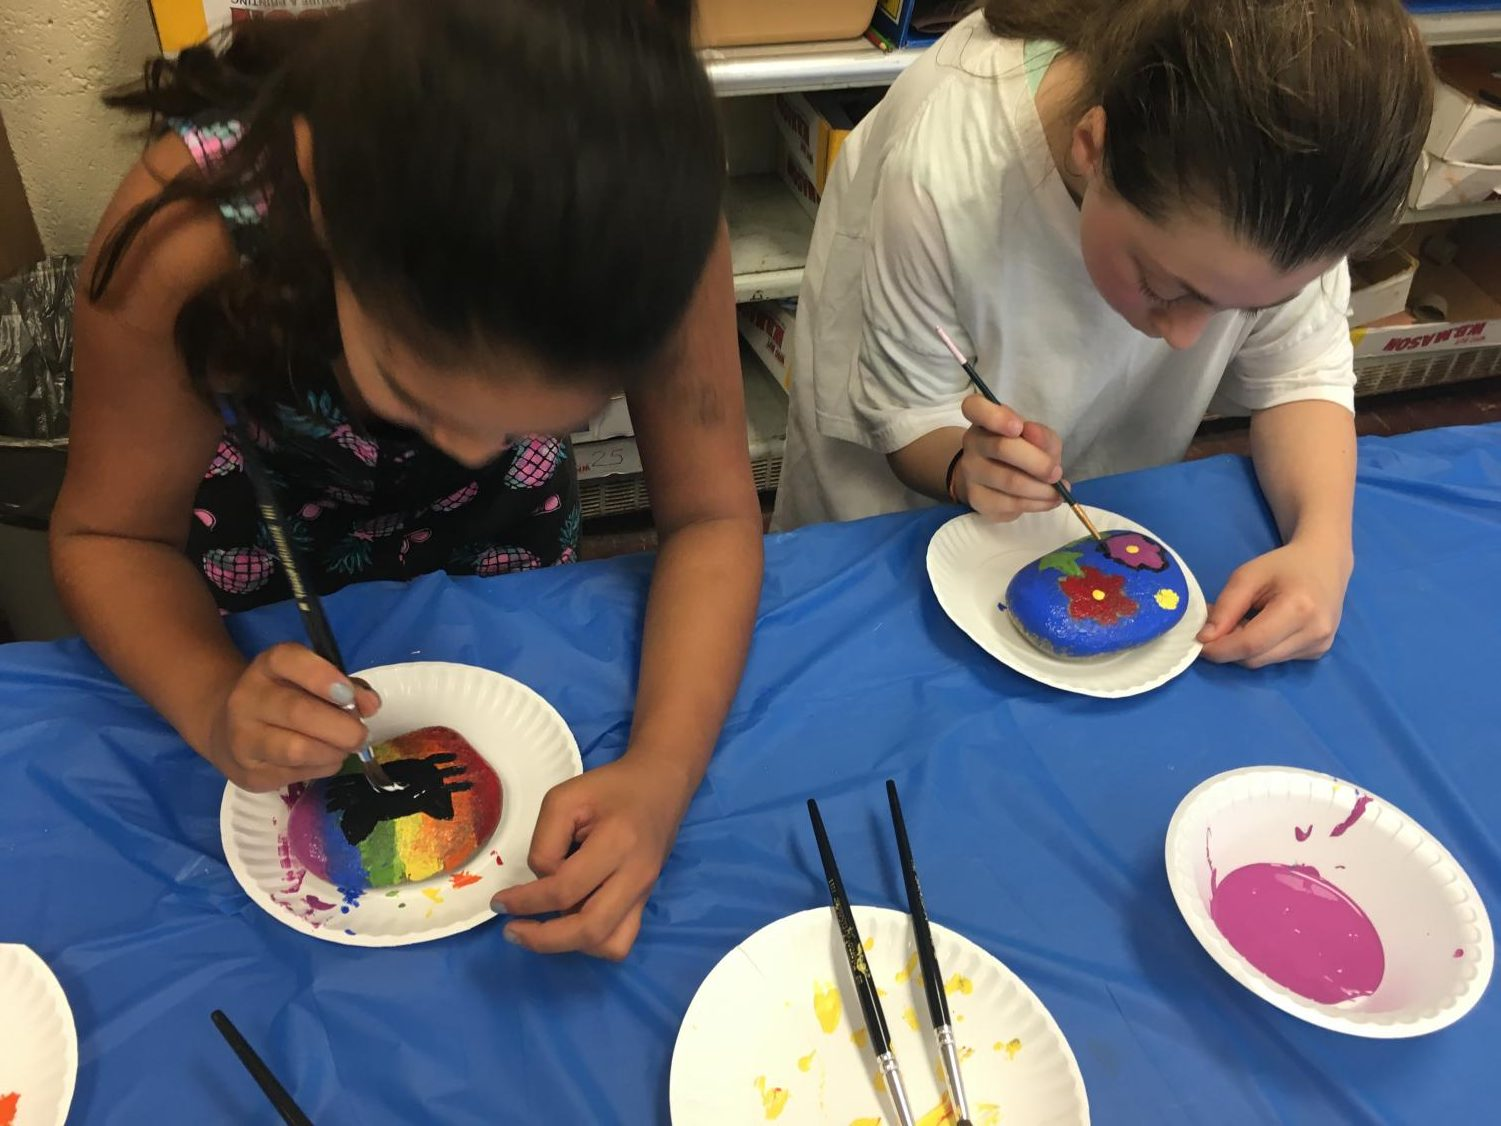 Students in grades 3 through 6 painted rocks after hearing the book Only One You by Linda Kranz. Each rock shows the student's individuality. The rocks will be cemented into a rock garden later this school year.